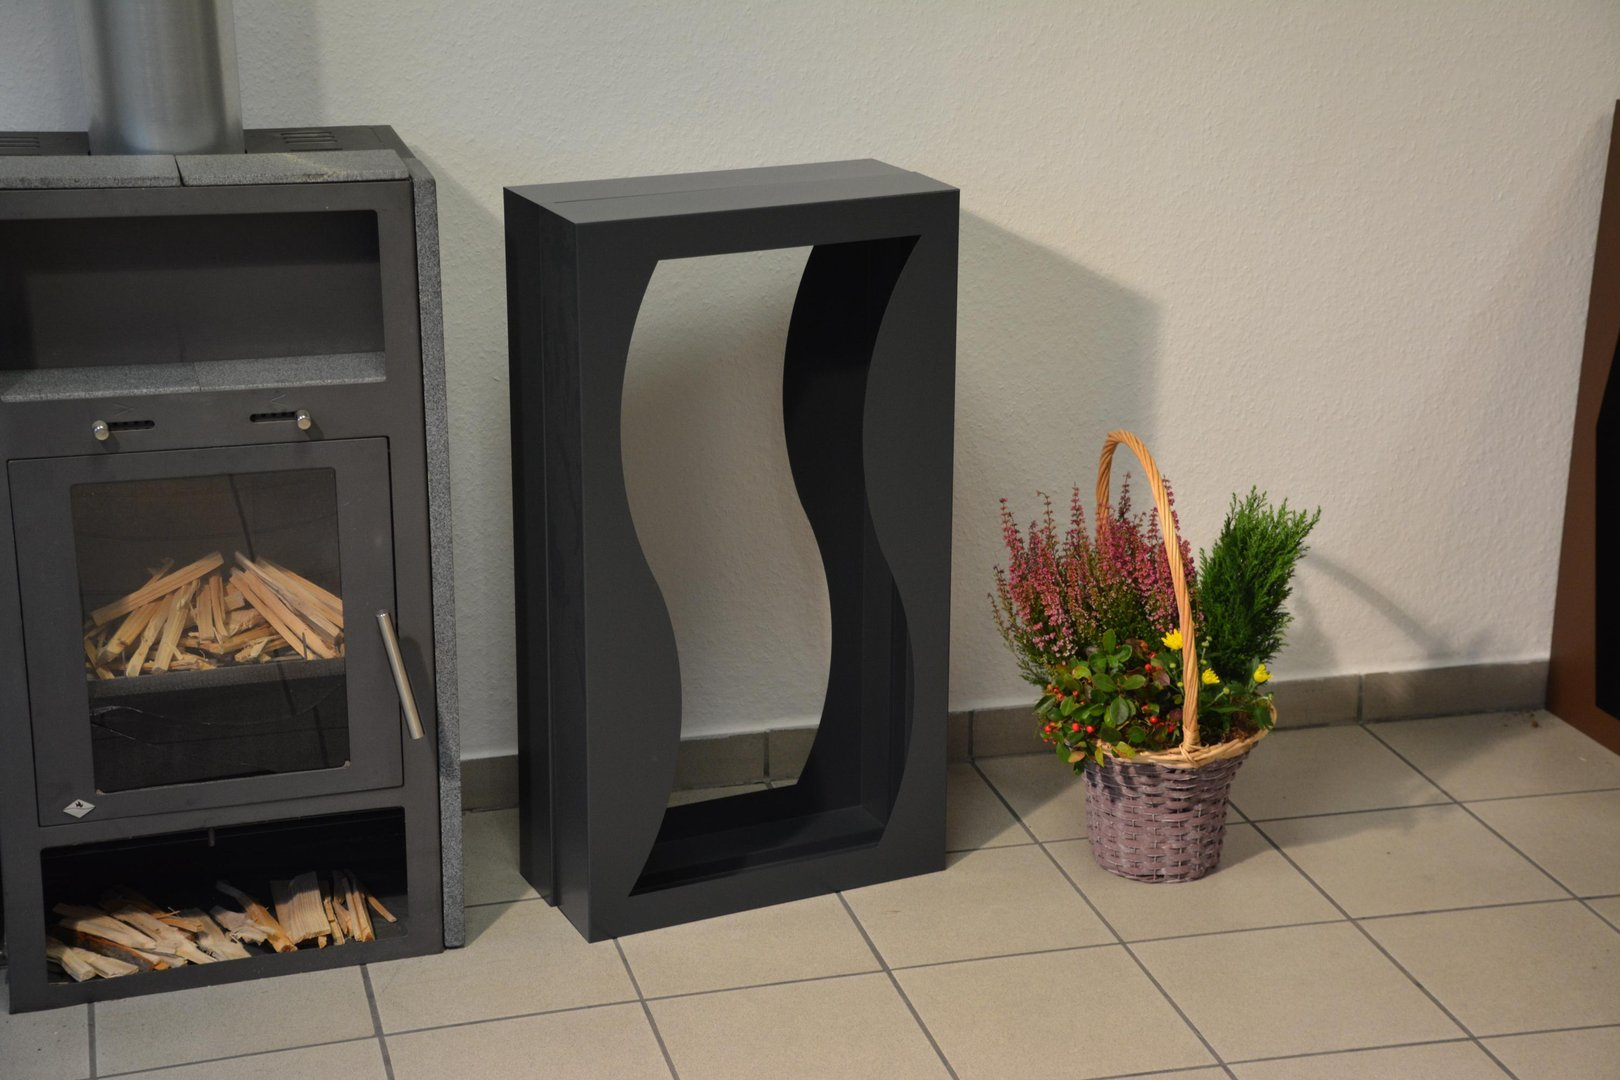 Kamin Regal Metall Kaminholzregal Metall Welle Innenbereich Regal Aus Metall